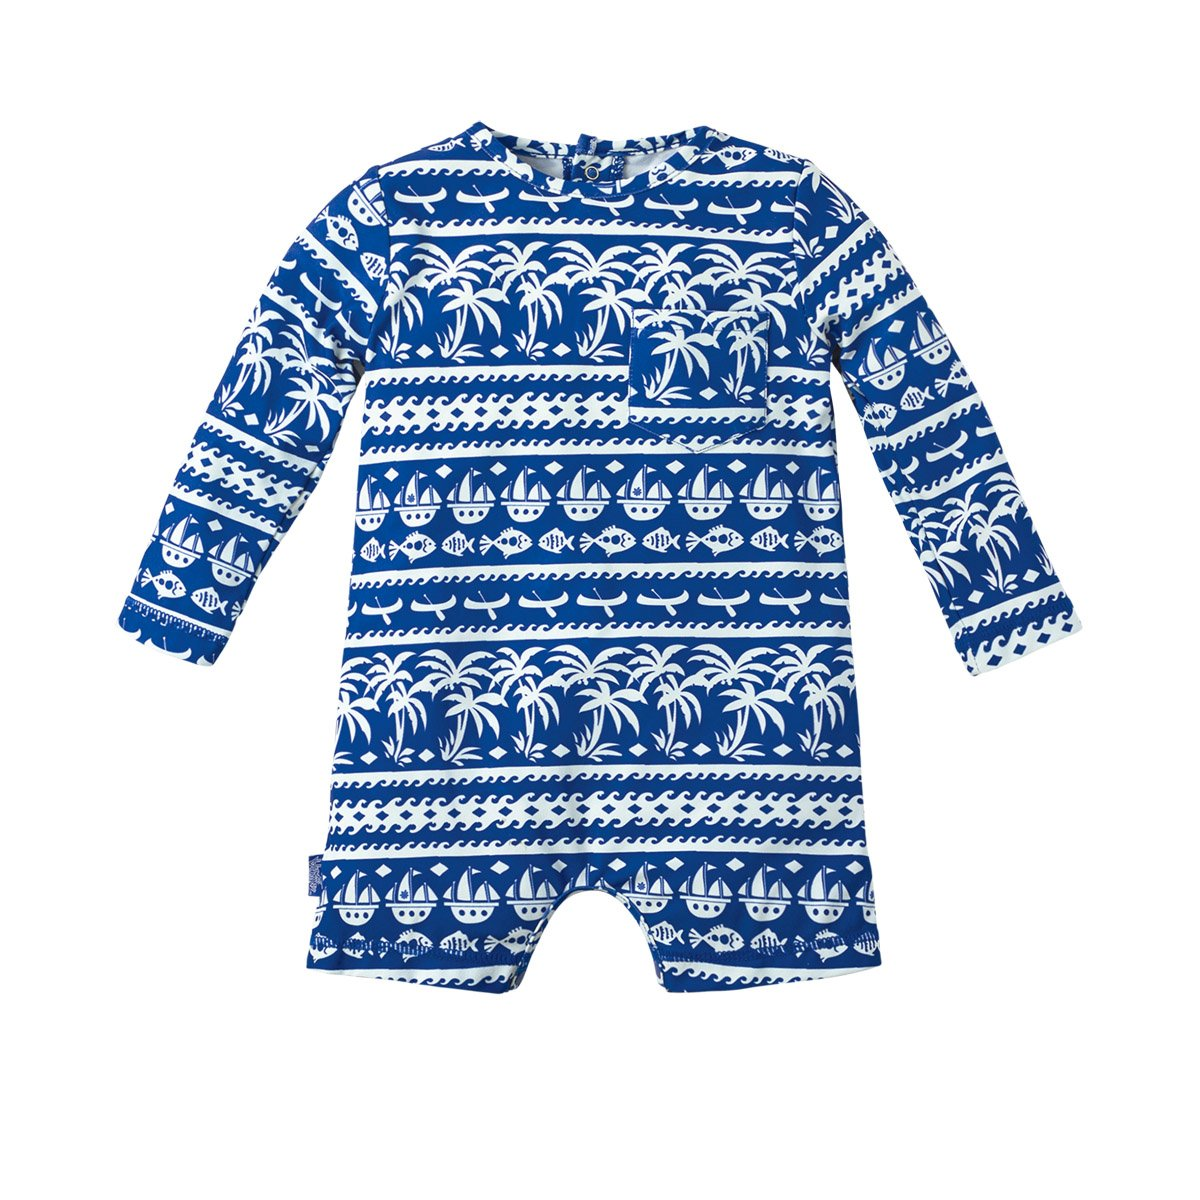 UV SKINZ UPF 50+ Baby Boys UV Sunzie Navy Blue Seashore